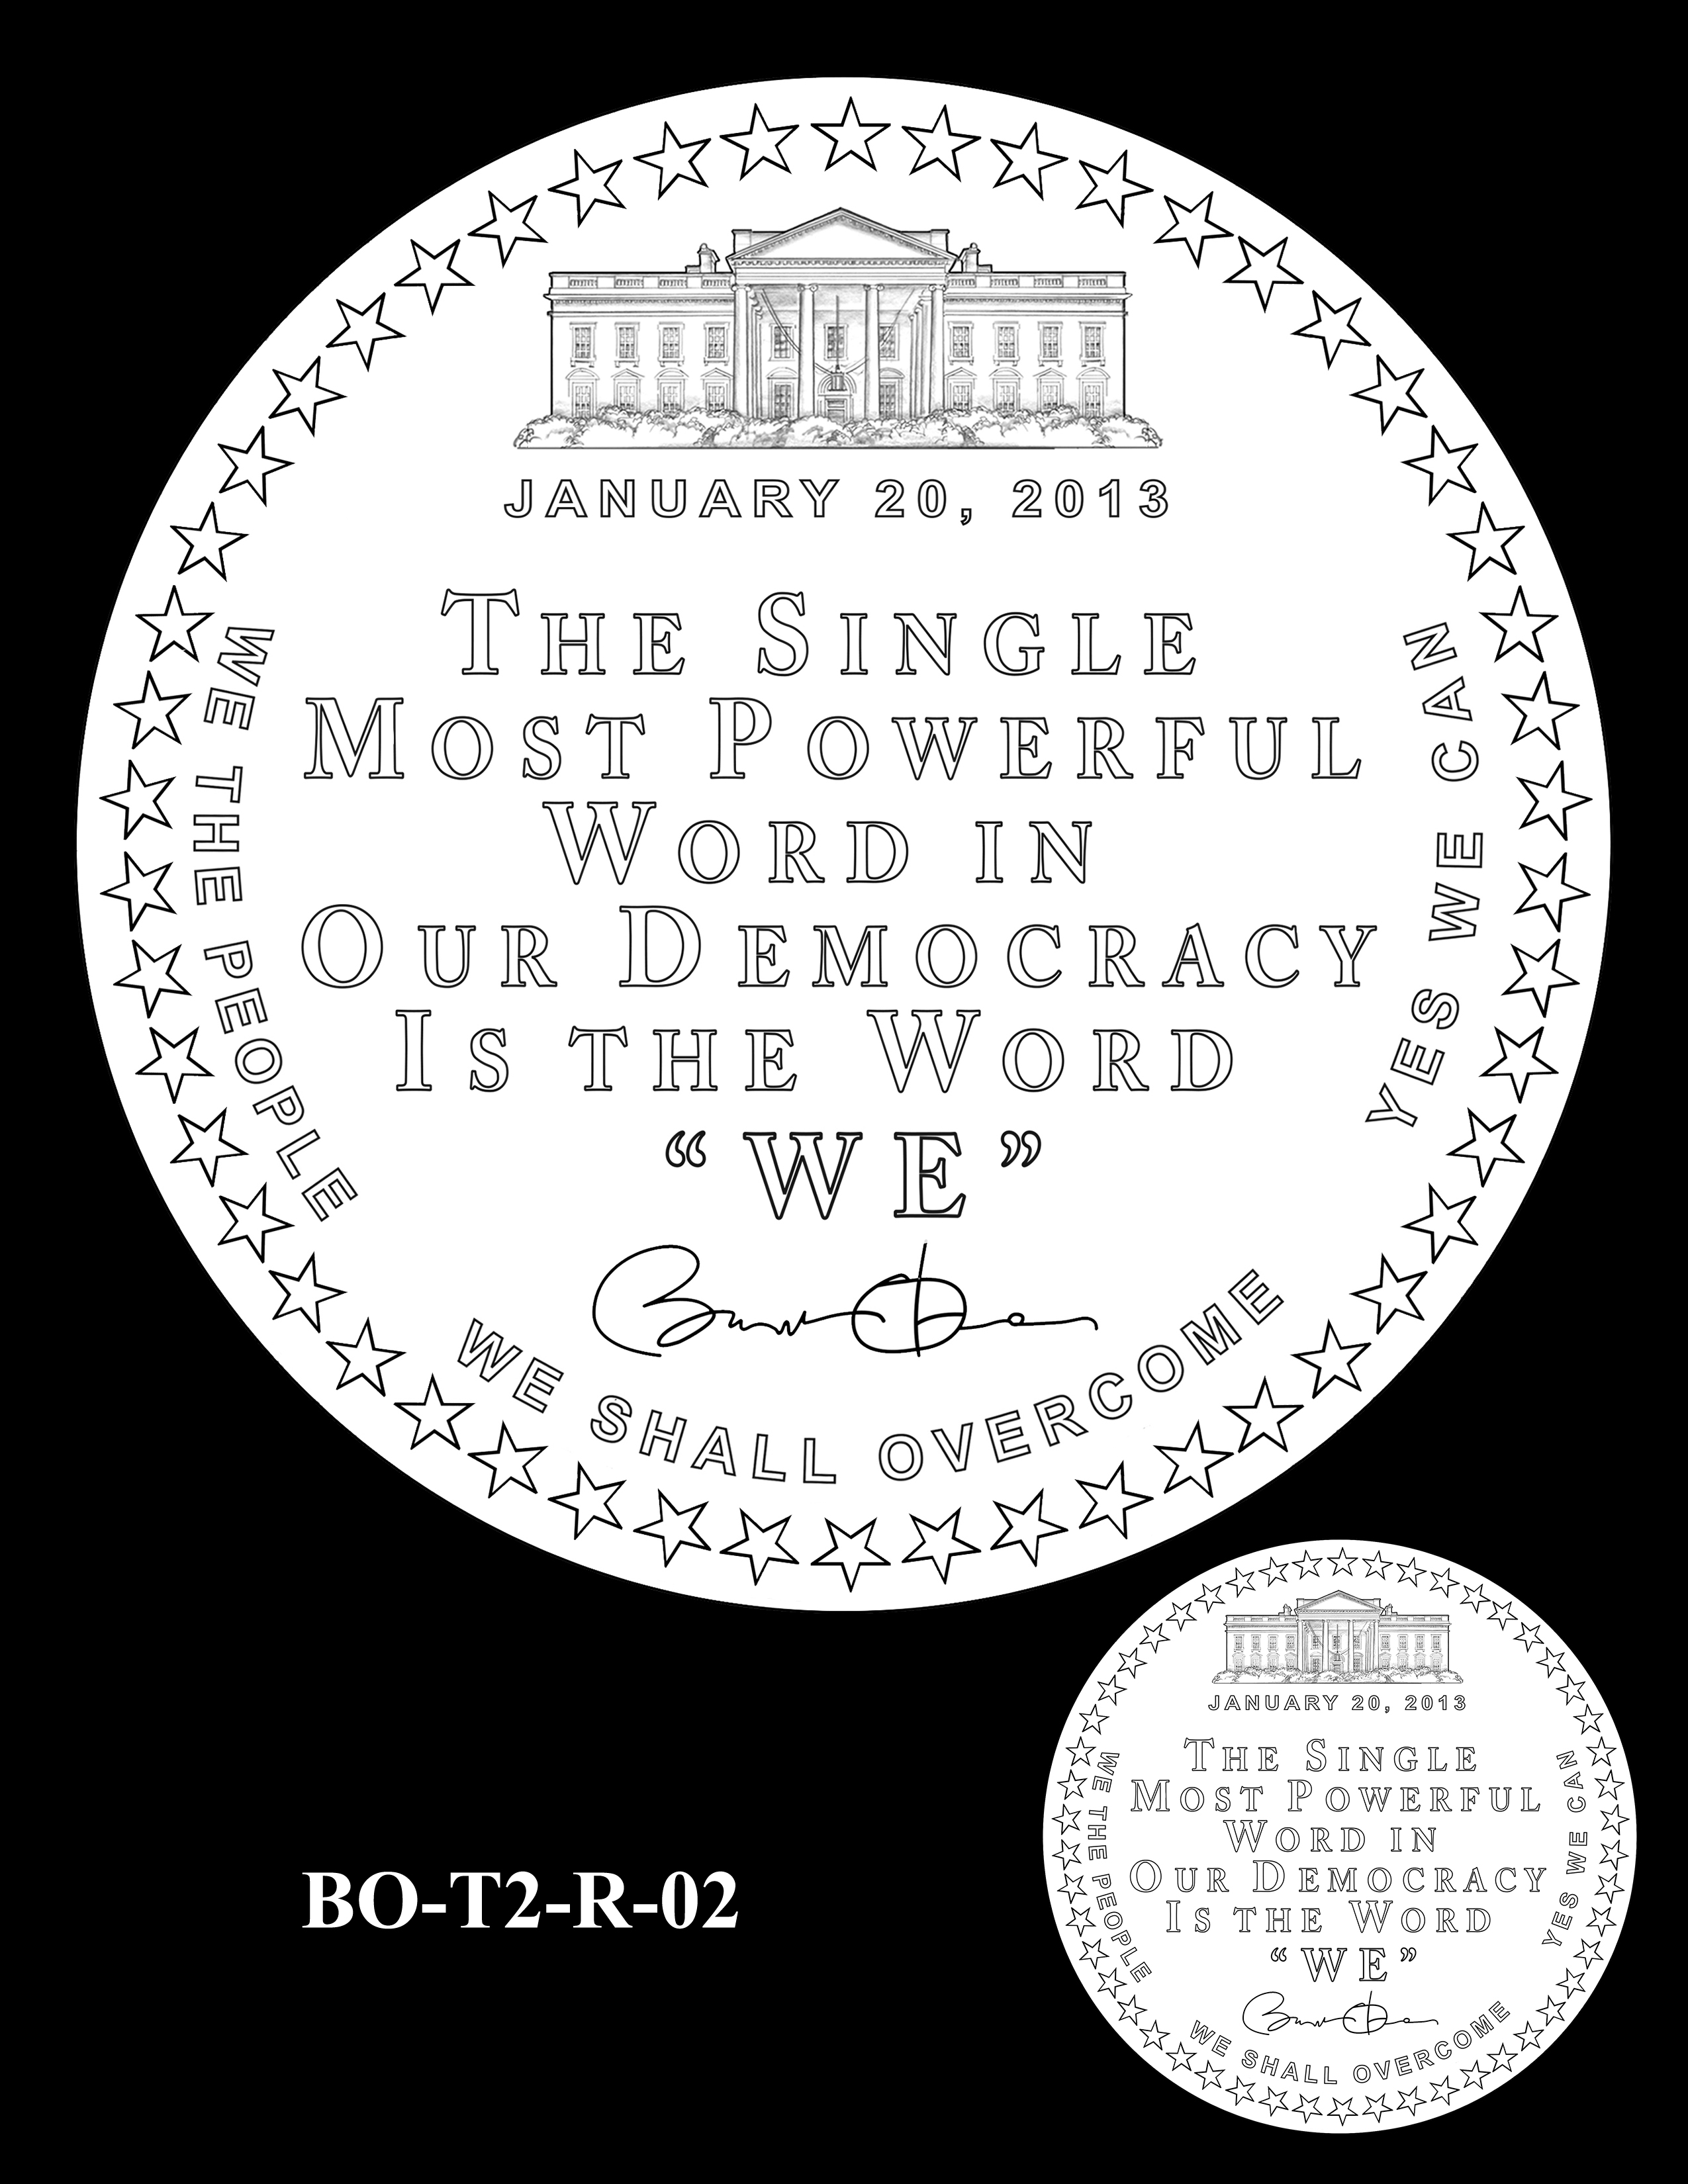 BO-T2-R-02 - Barack Obama Presidential Medals Term Two Reverse